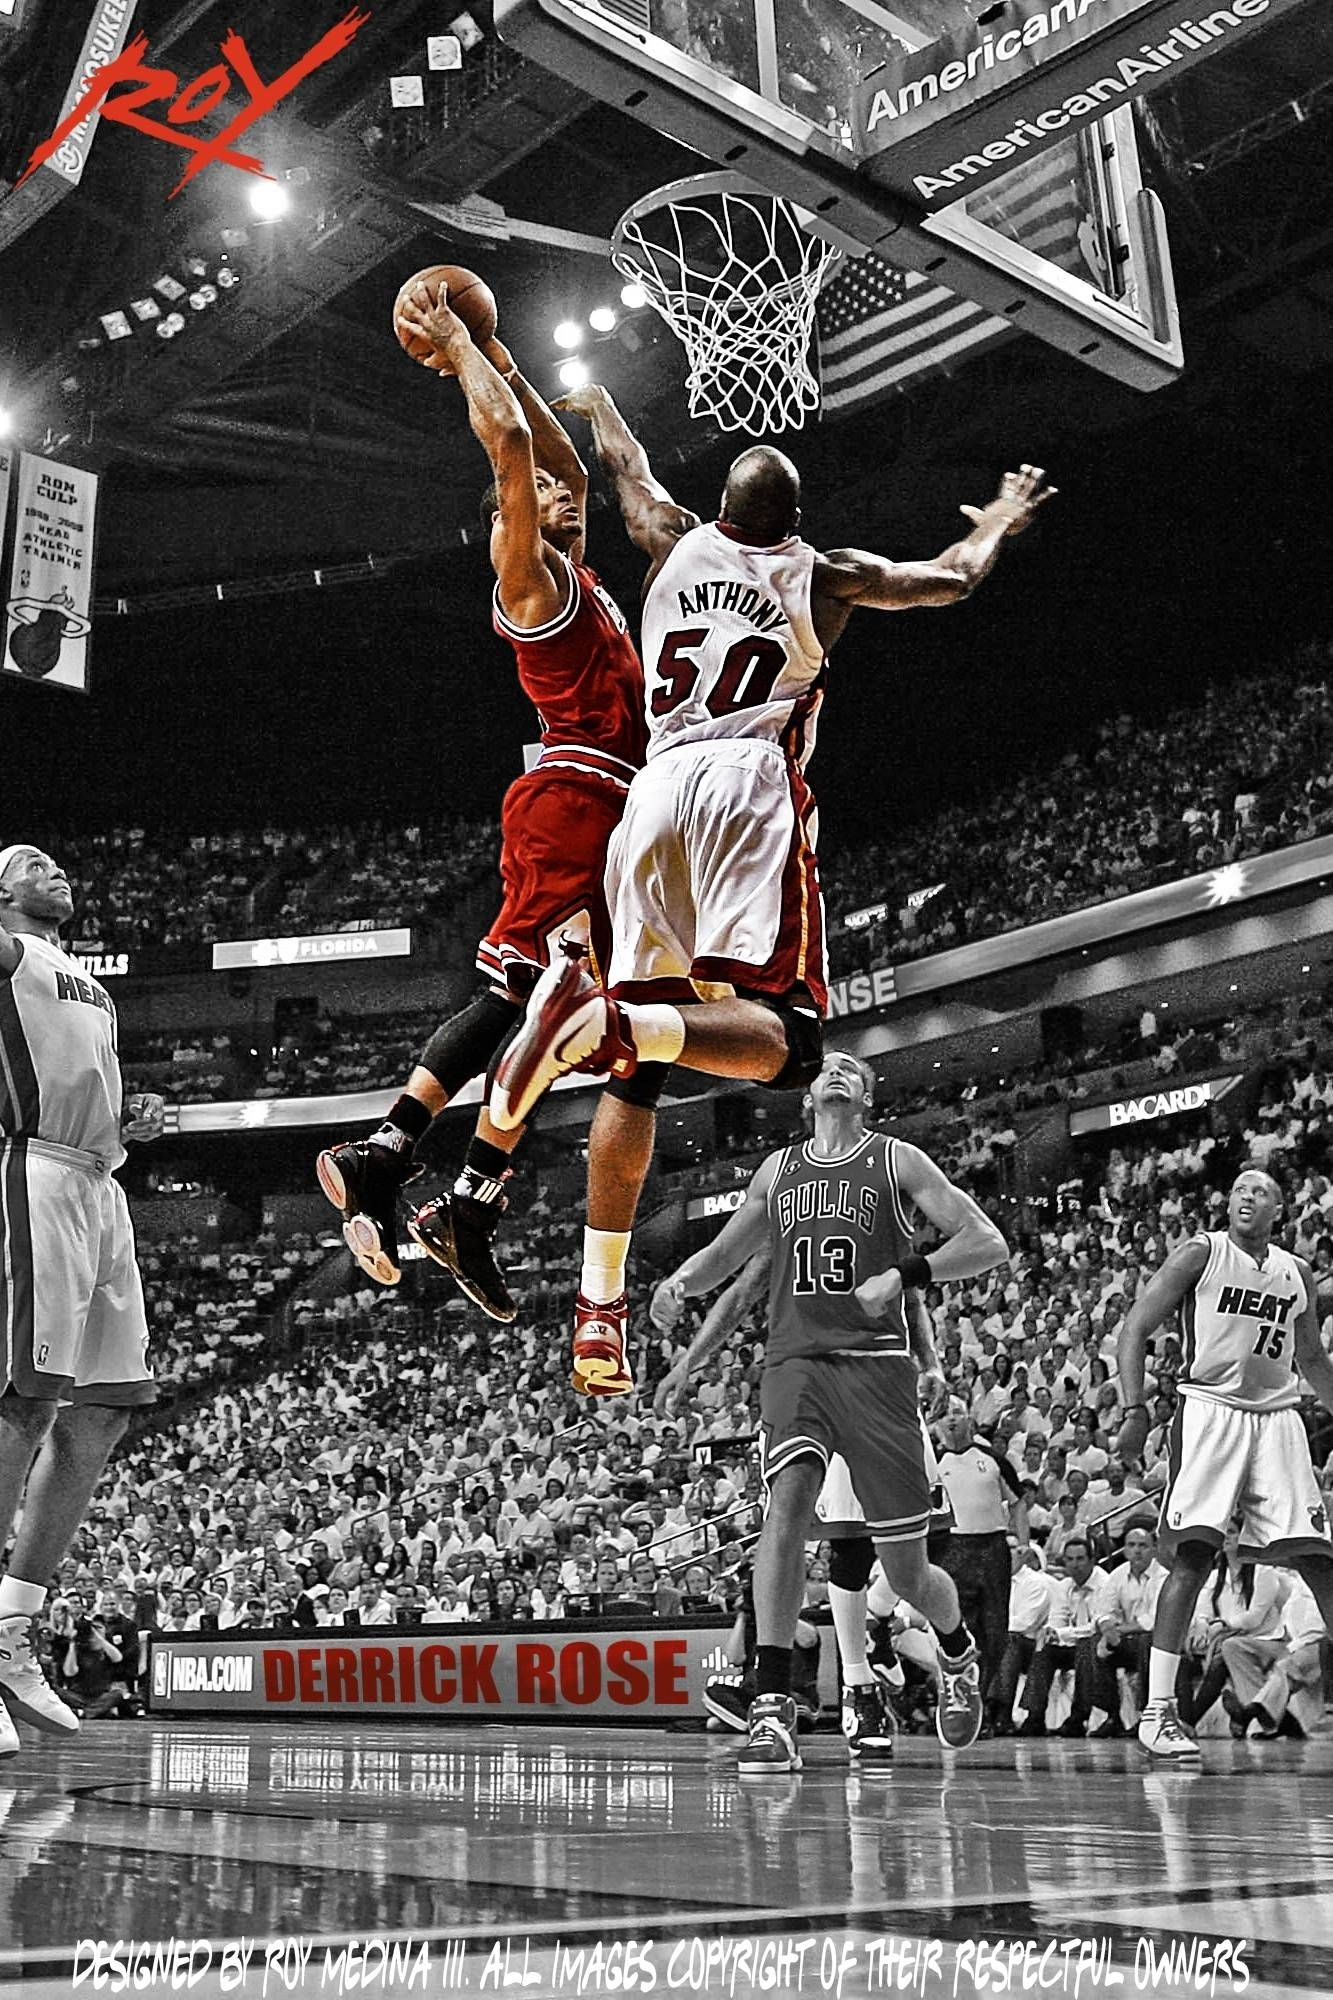 rose logo wallpapers wallpaper | nice | pinterest | derrick rose